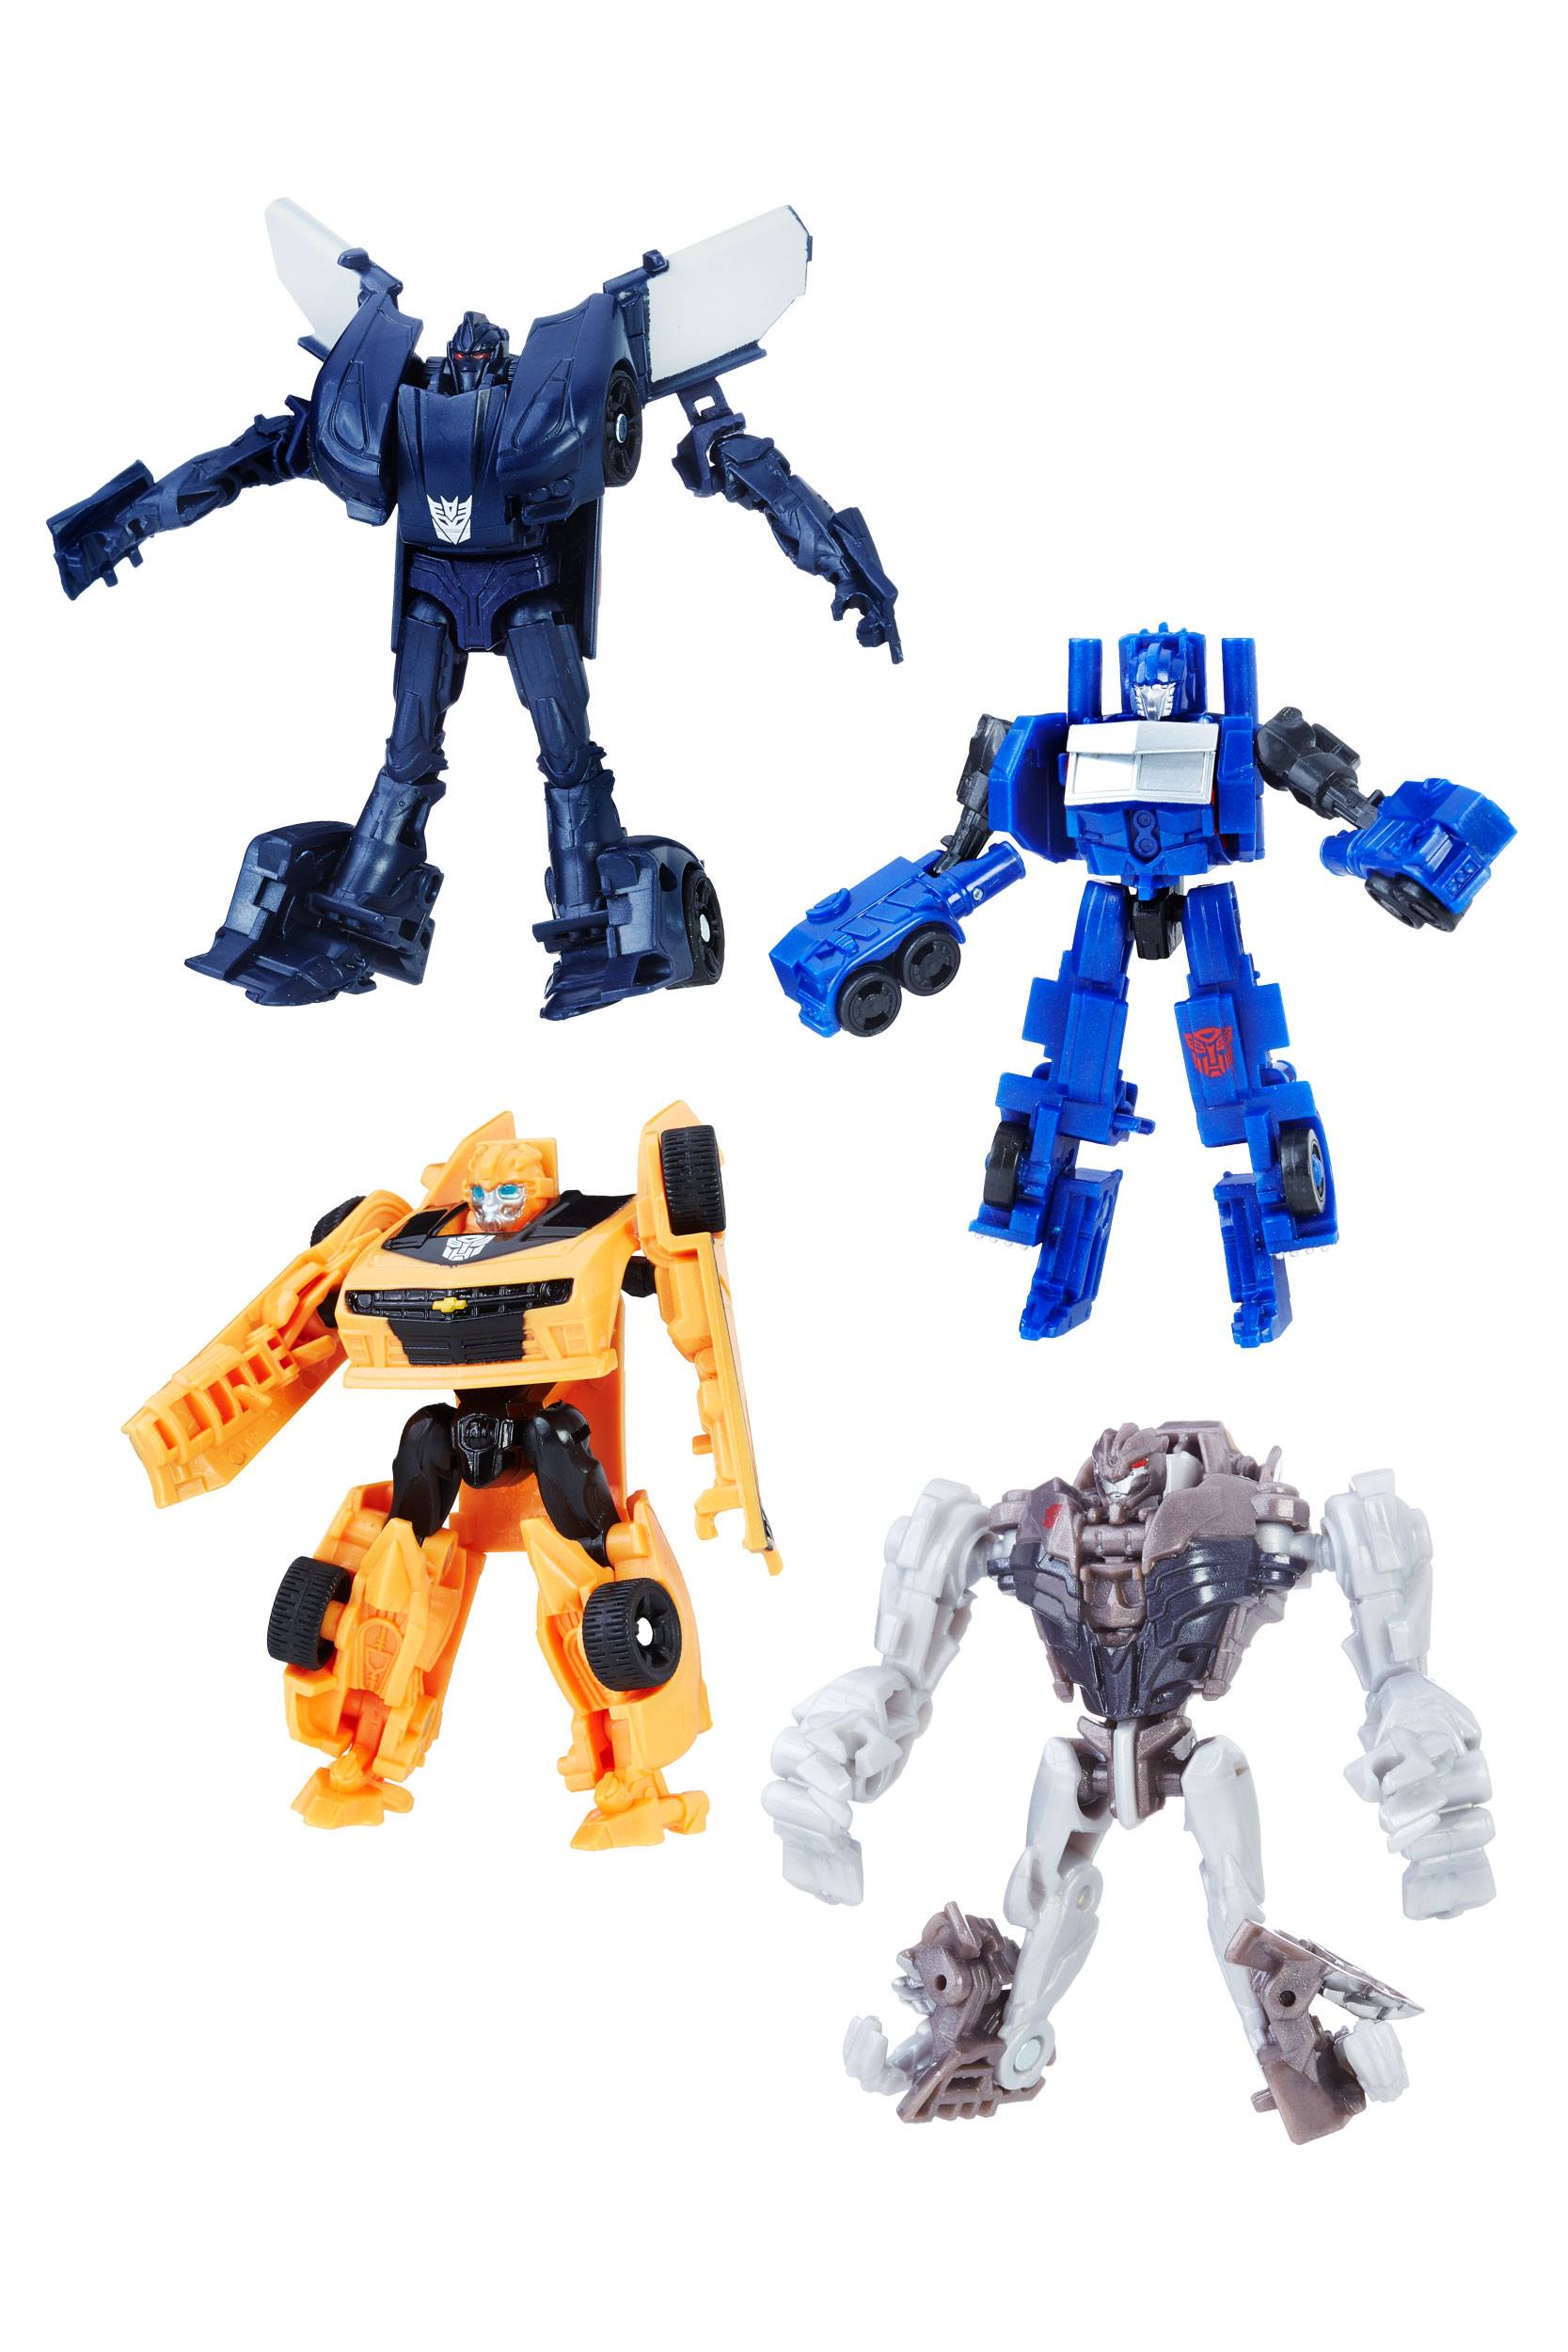 Transformers The Last Knight Legion Action Figures 8 Cm